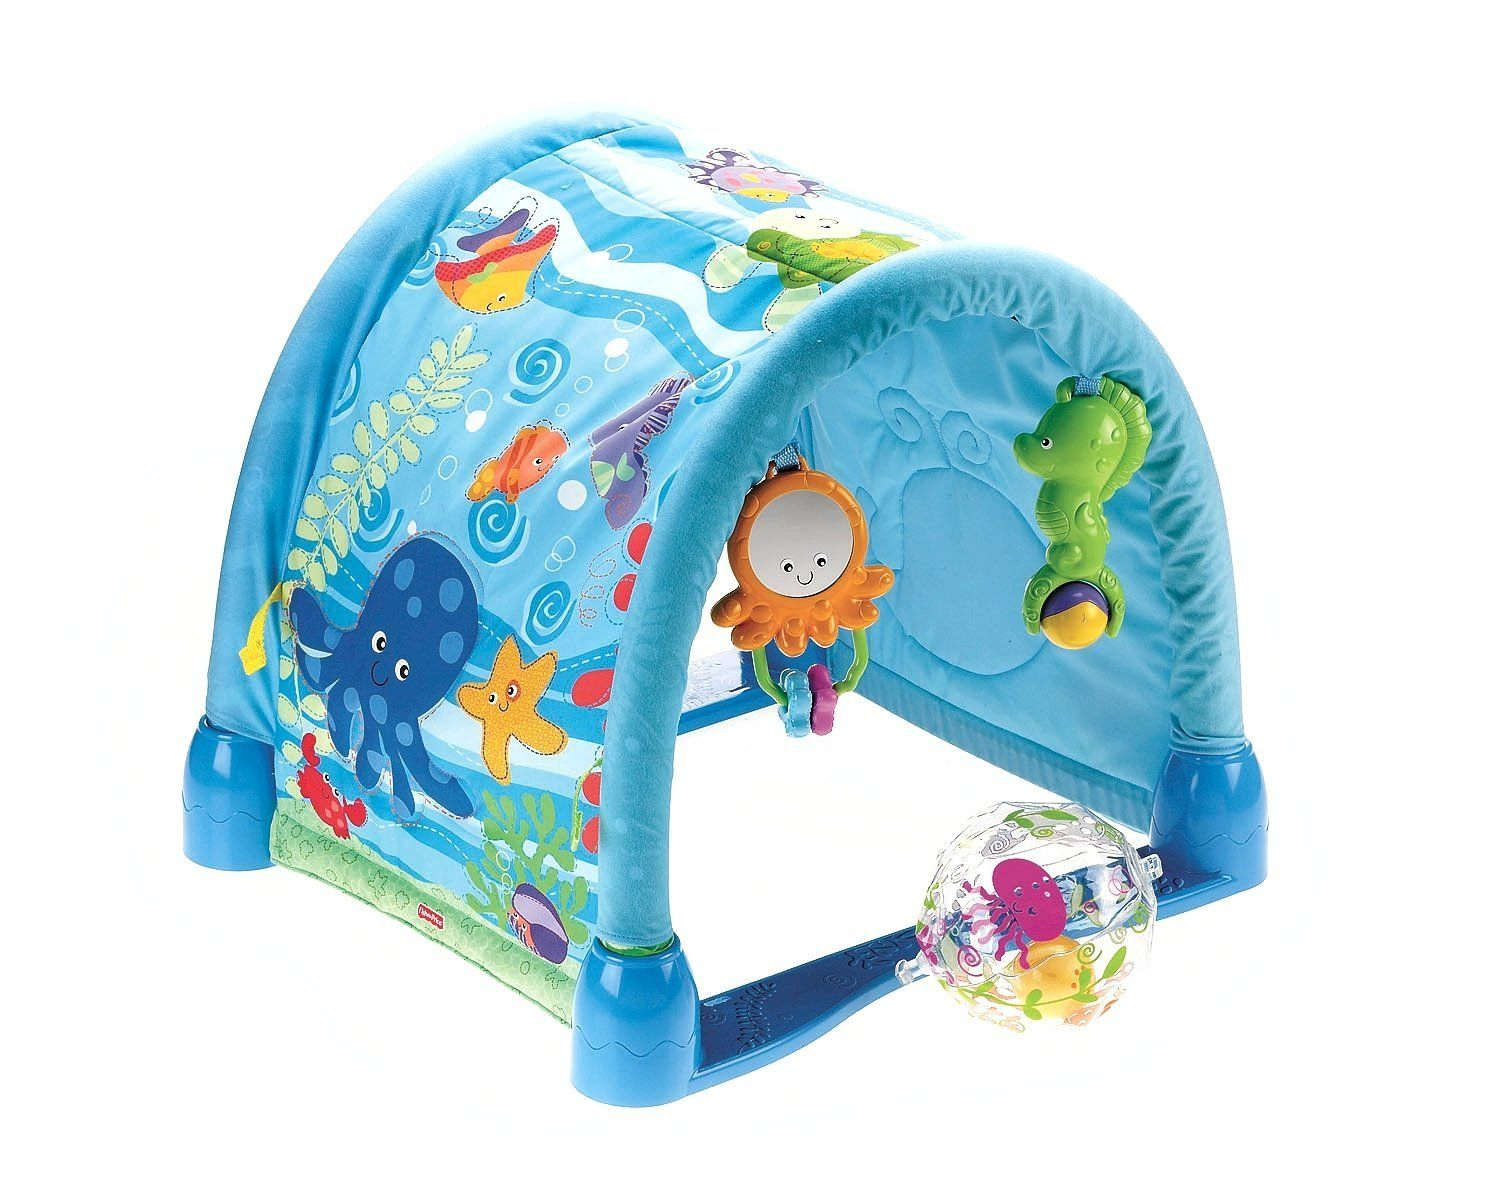 Fisher-Price P5331 Baby-Infant Play Yards | Topchopshop | Pinterest ...